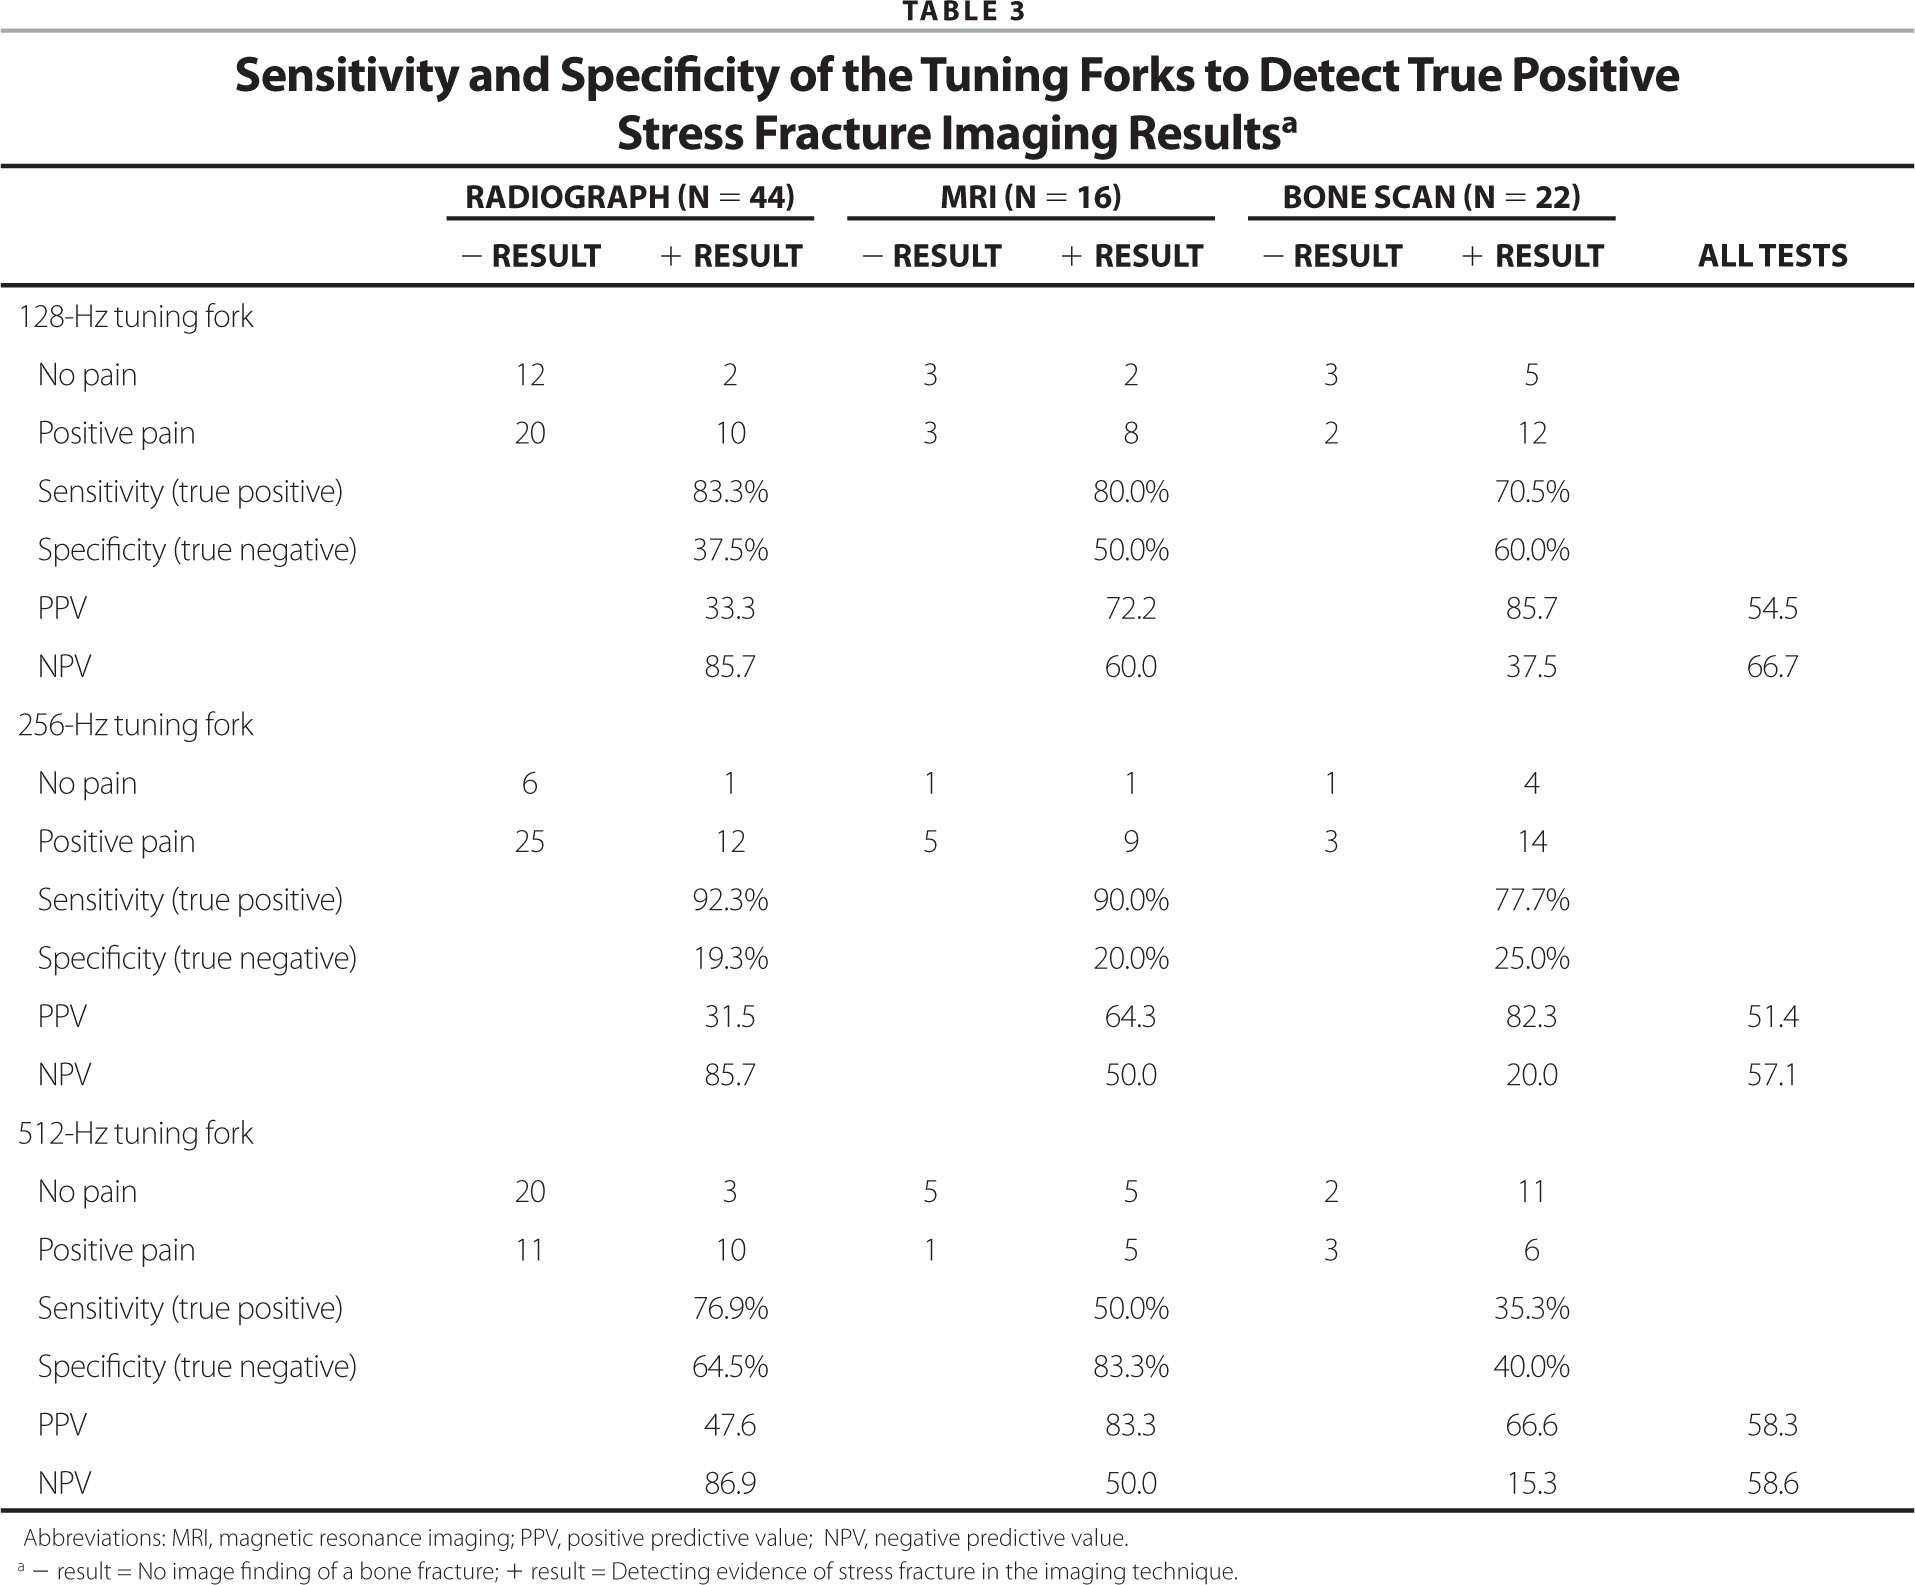 Sensitivity and Specificity of the Tuning Forks to Detect True Positive Stress Fracture Imaging Resultsa